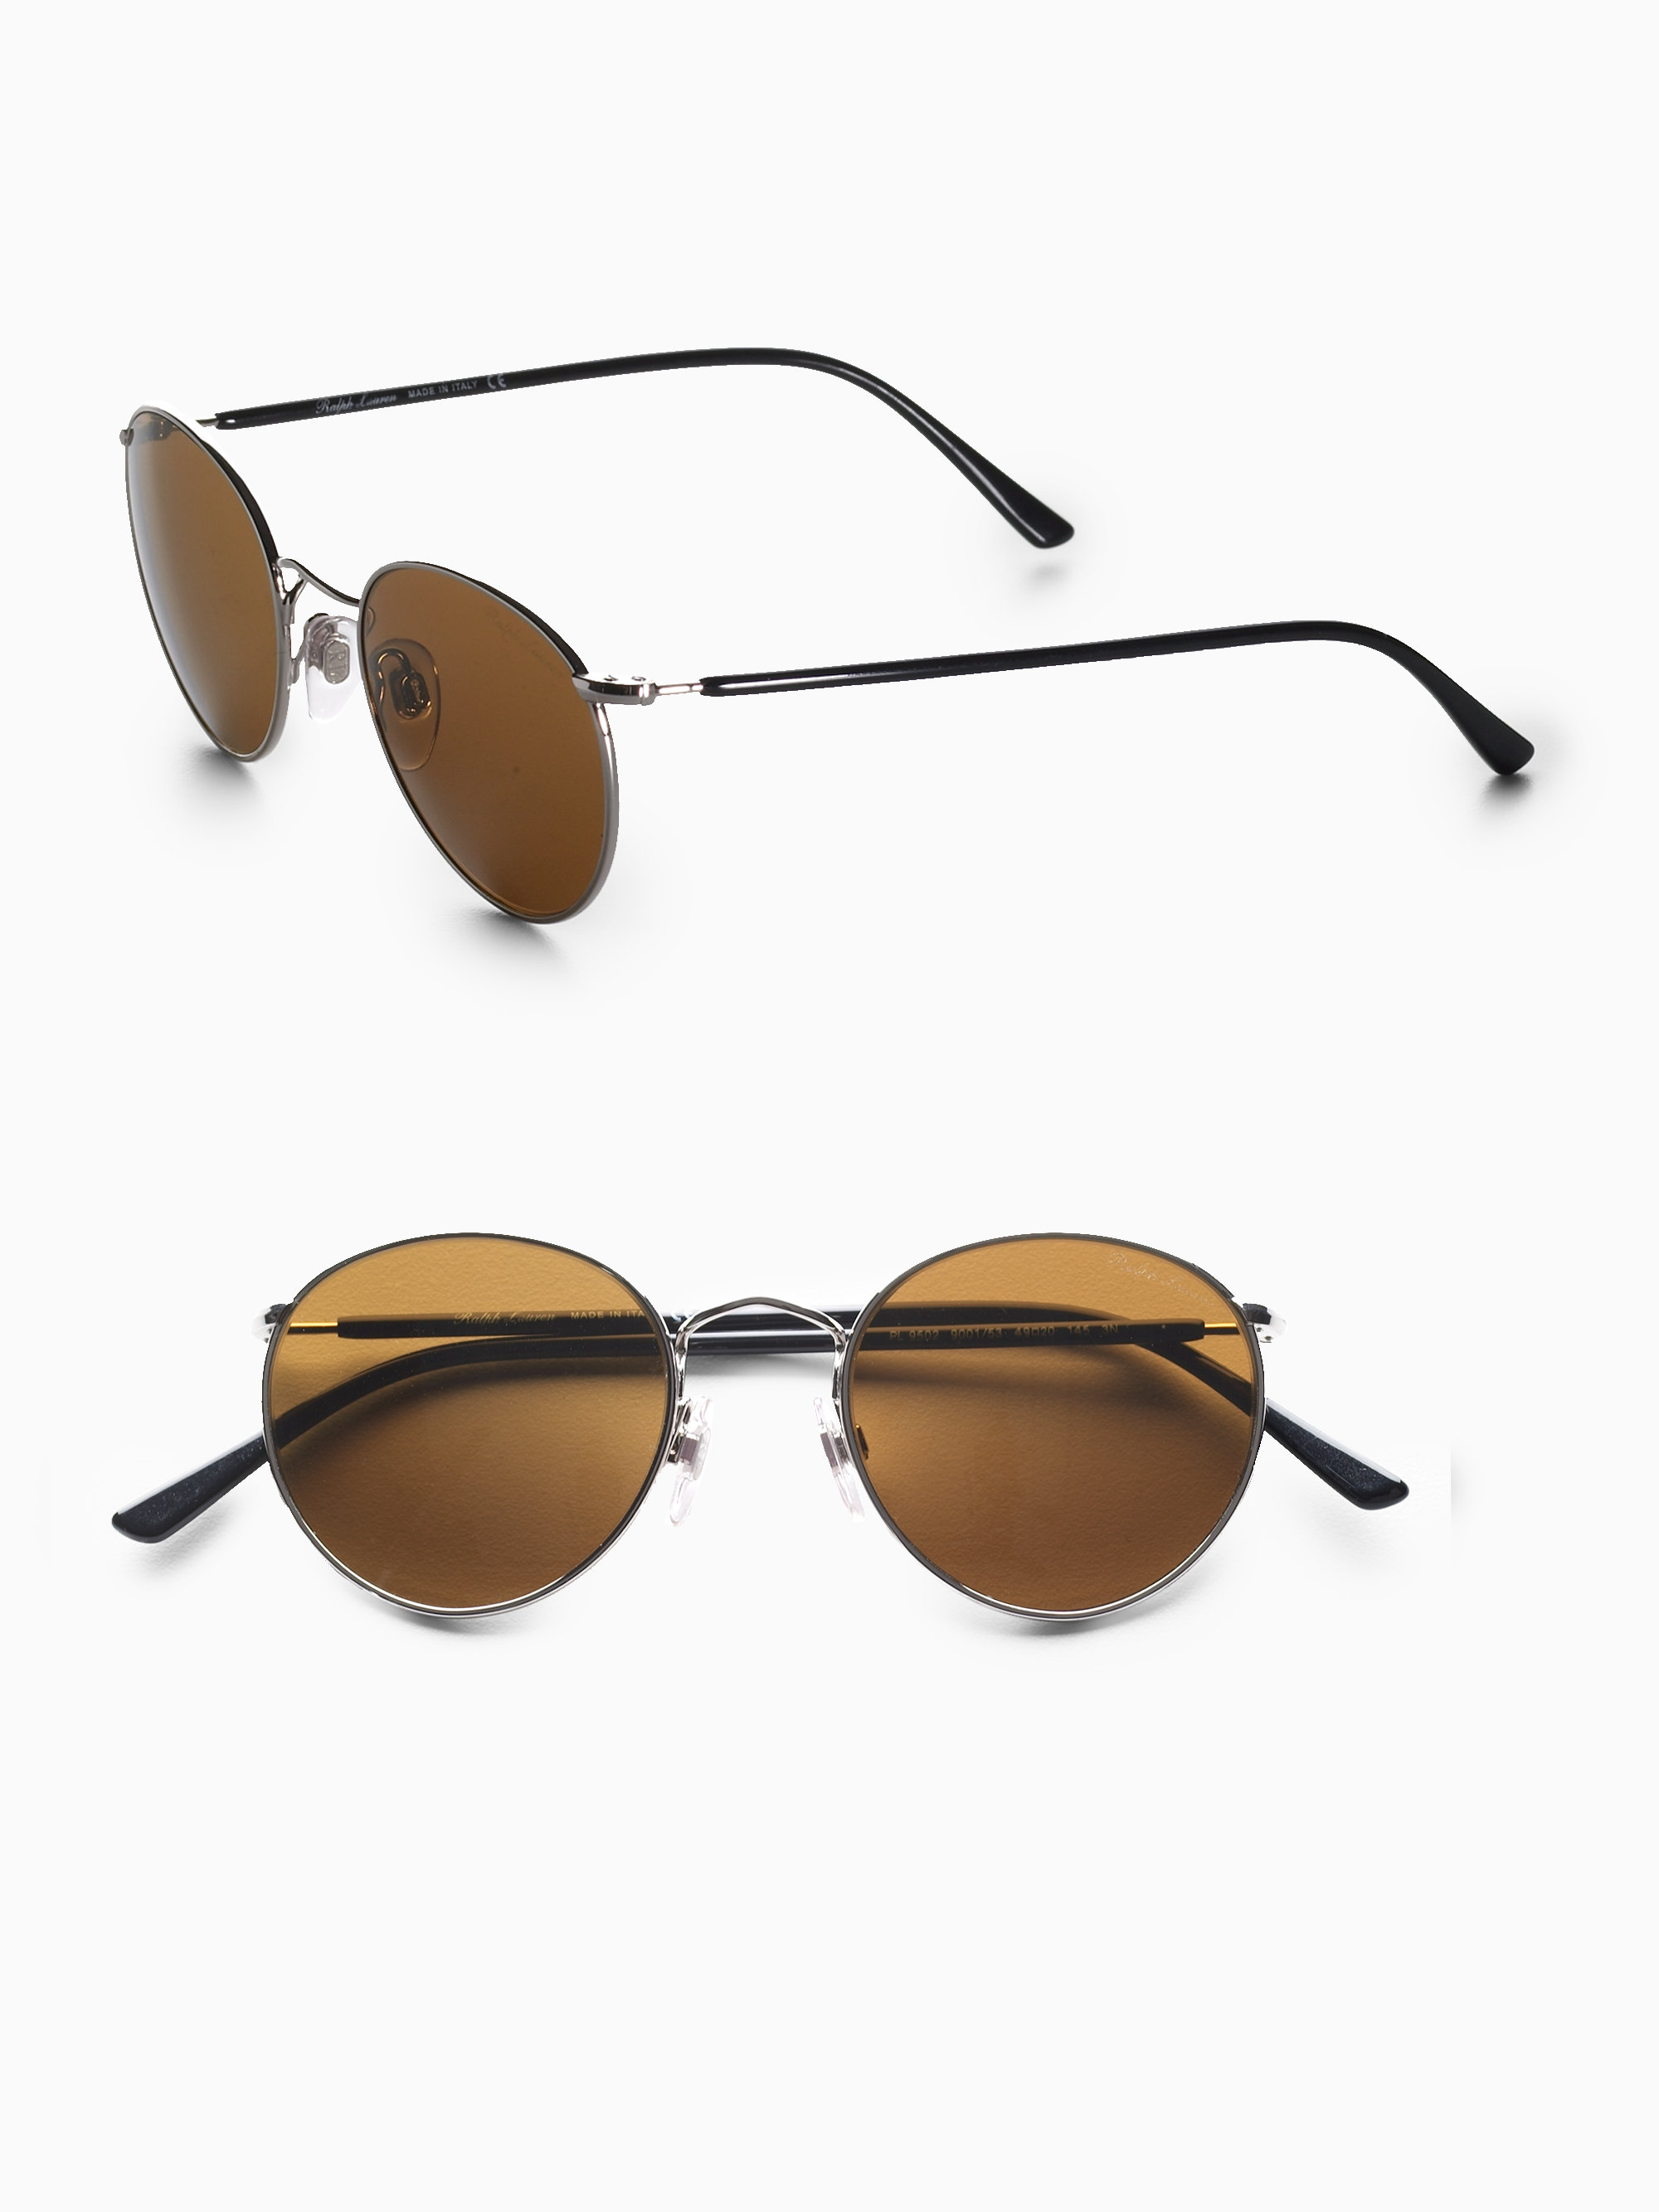 Lyst - Polo Ralph Lauren Small Round Sunglasses/Silver Frames in ...